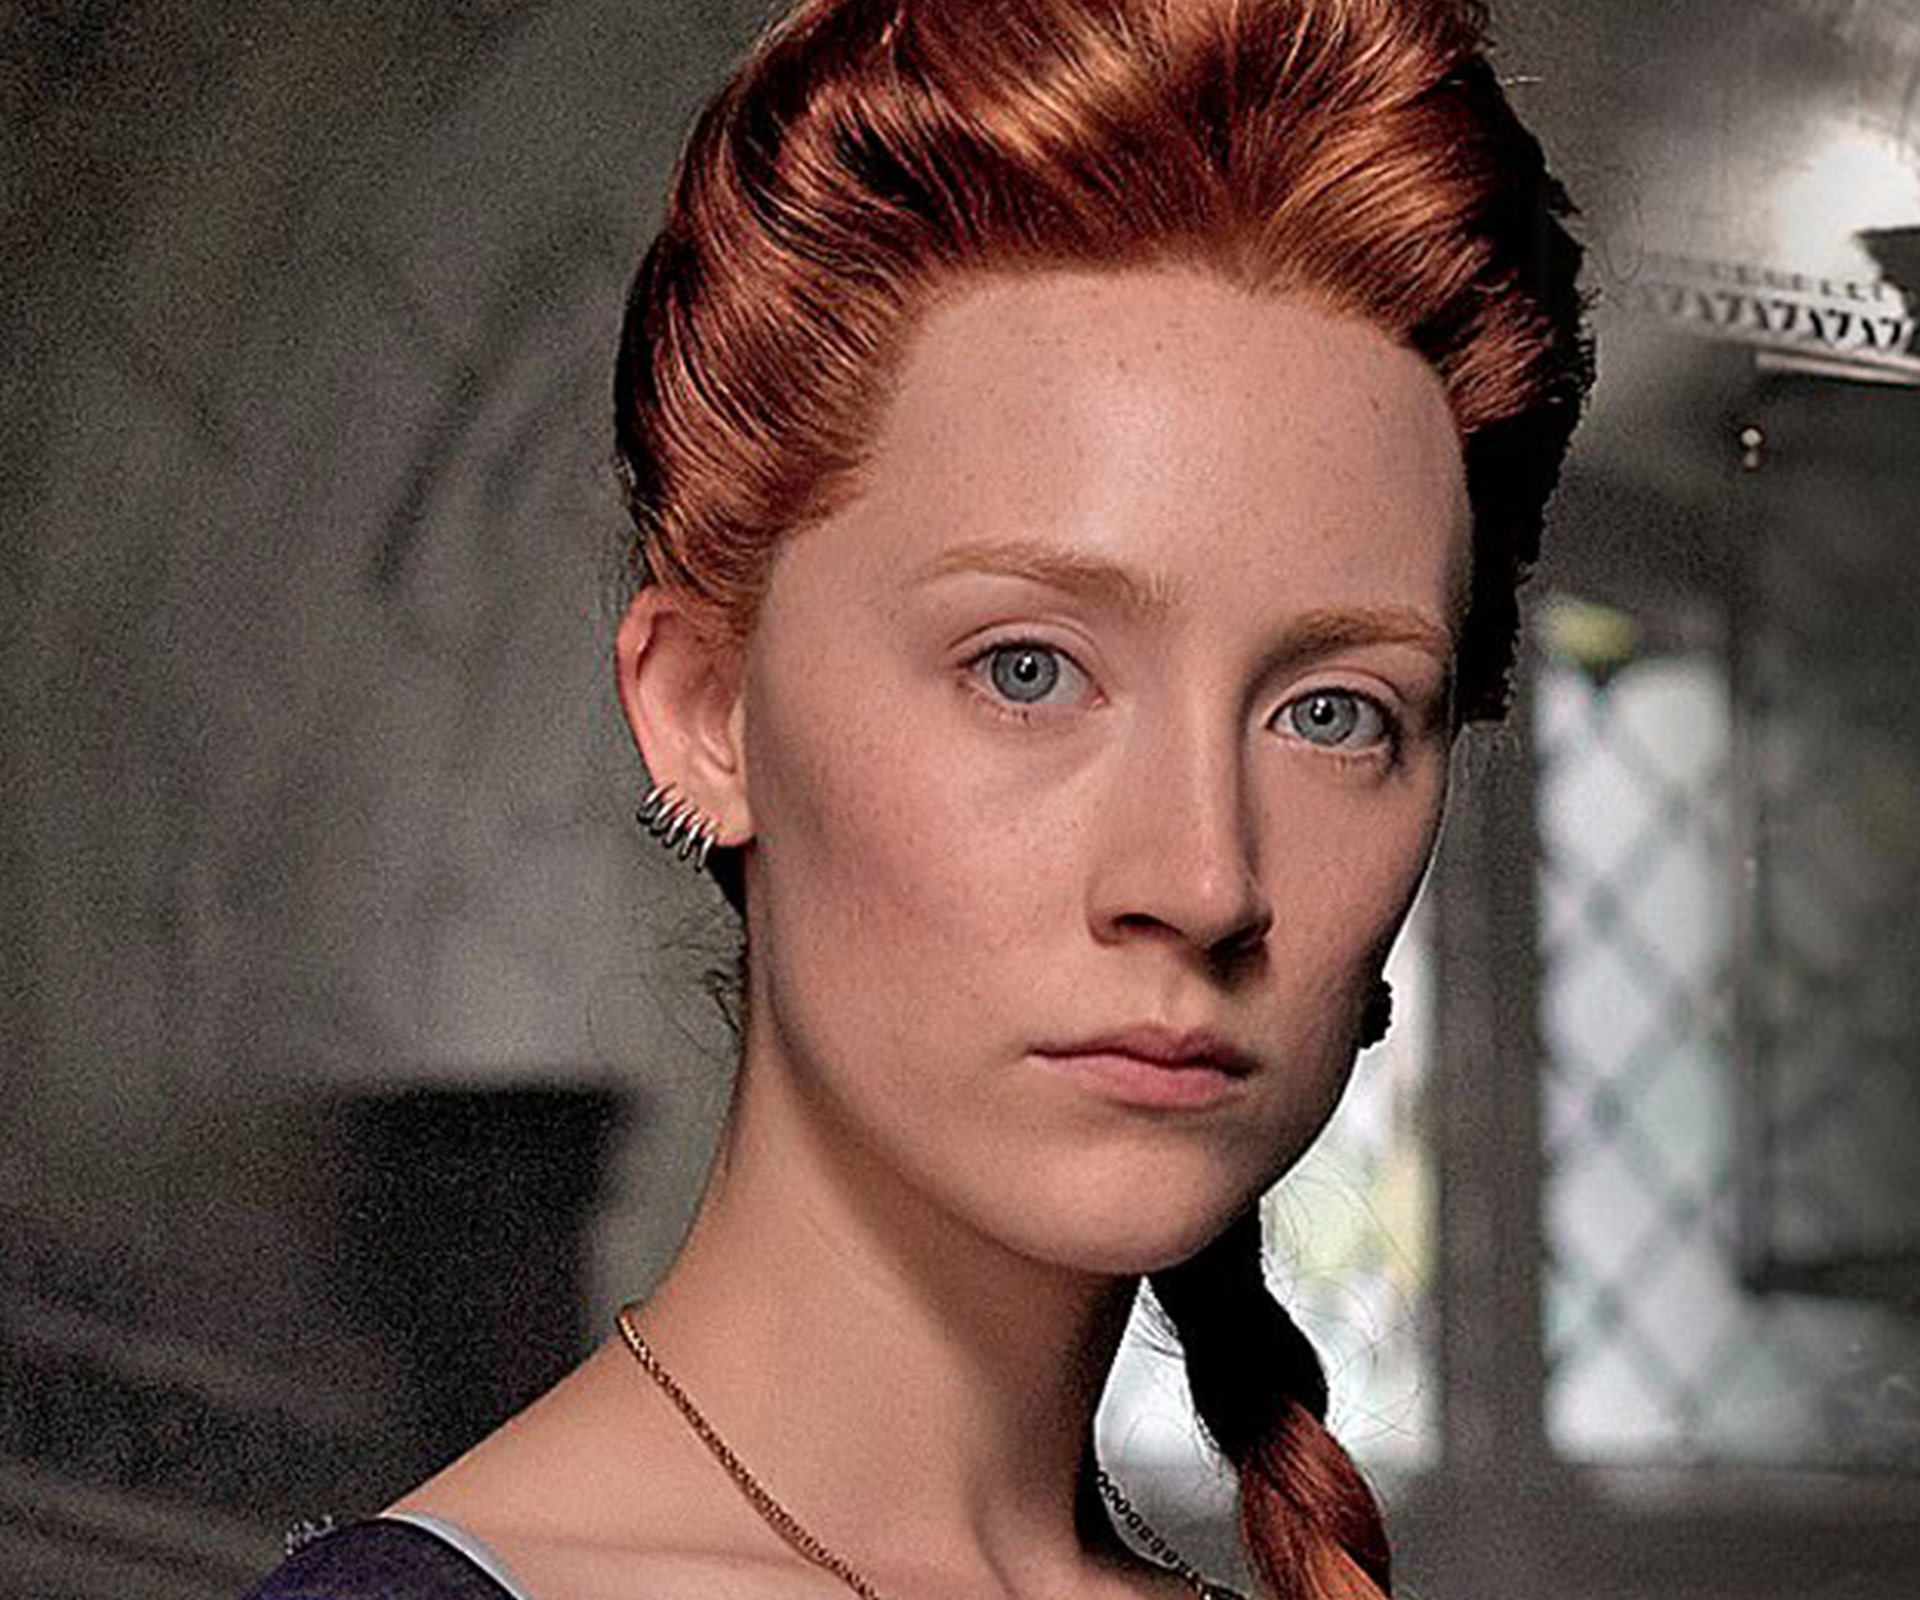 First look at Saoirse Ronan's Mary, Queen of Scots